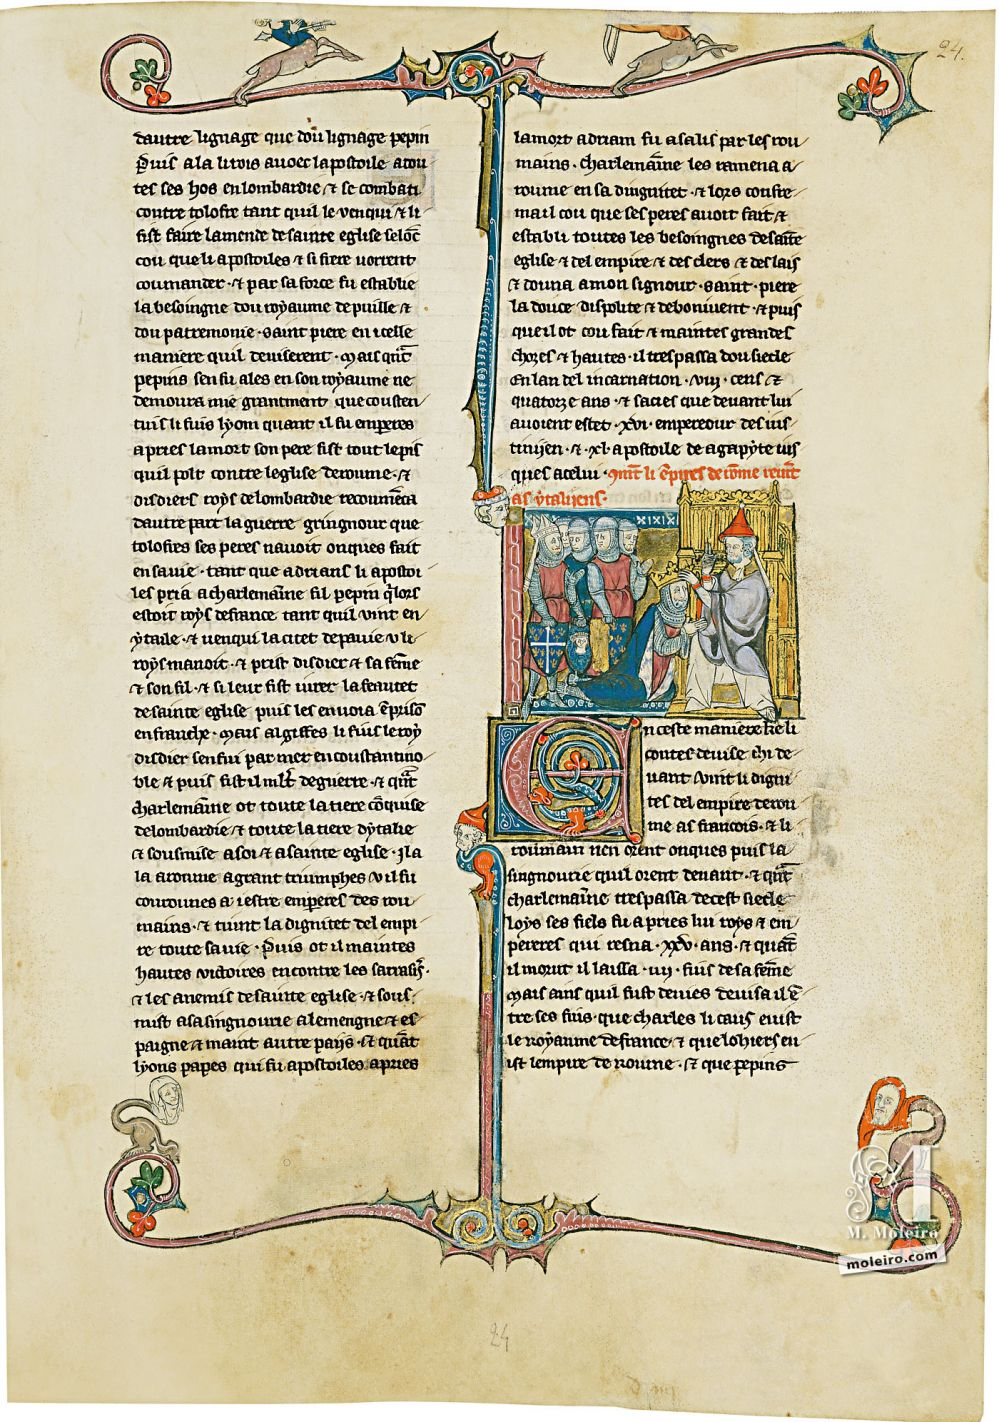 Book of Treasures f. 24r, The coronation of Charlemagne by the pope